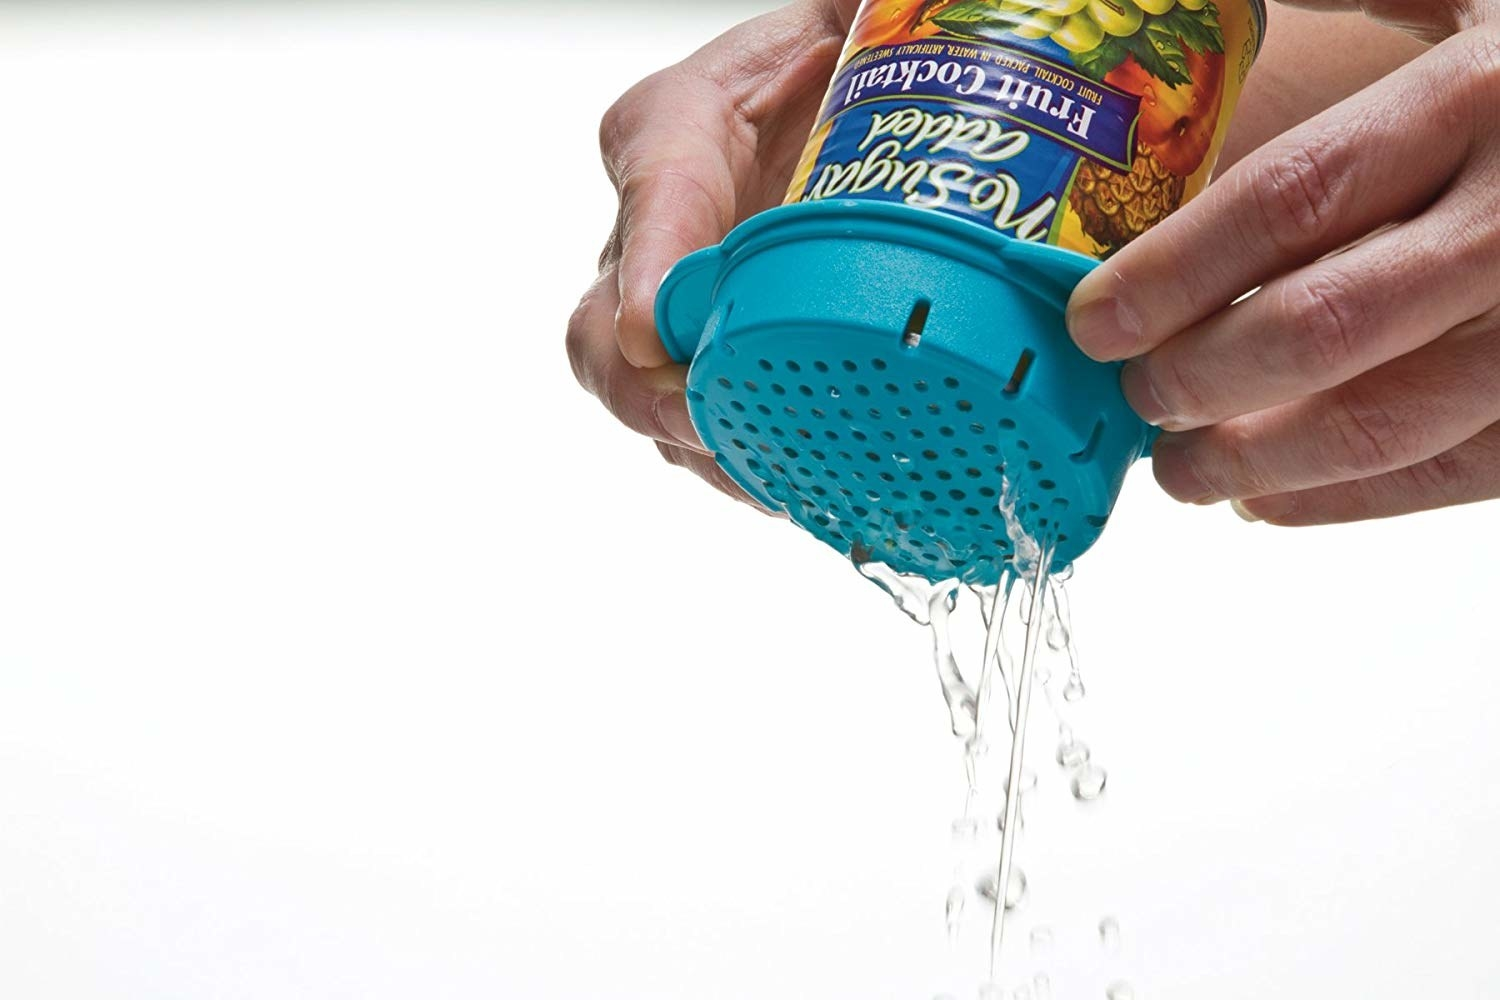 model's hands holding a can with the colander on top of it and pouring broth out of it